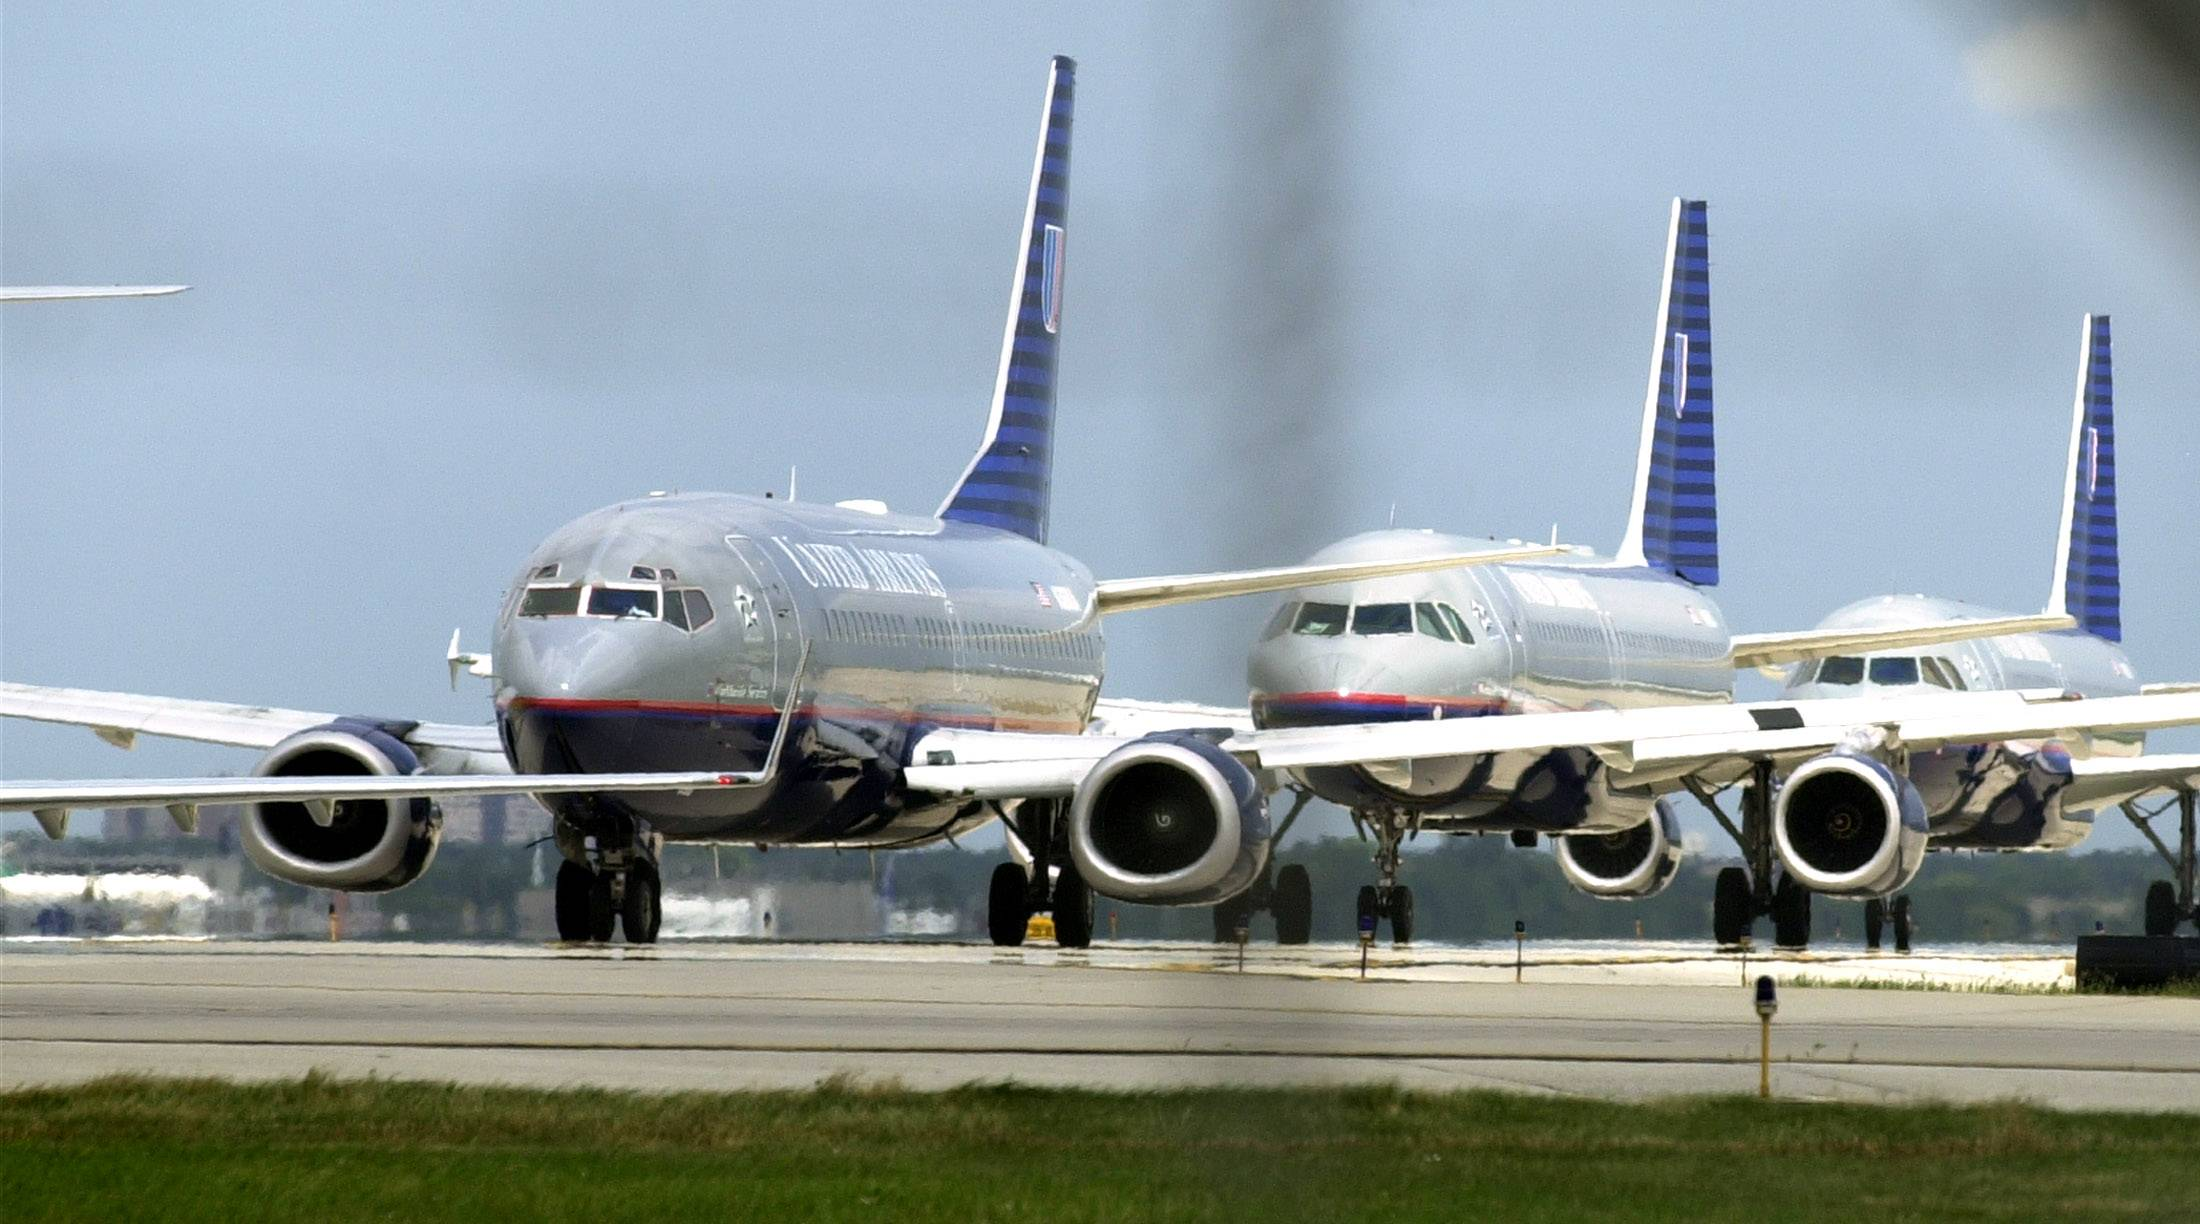 United Airlines planes Line up for Take Off at O'Hare International Airport.